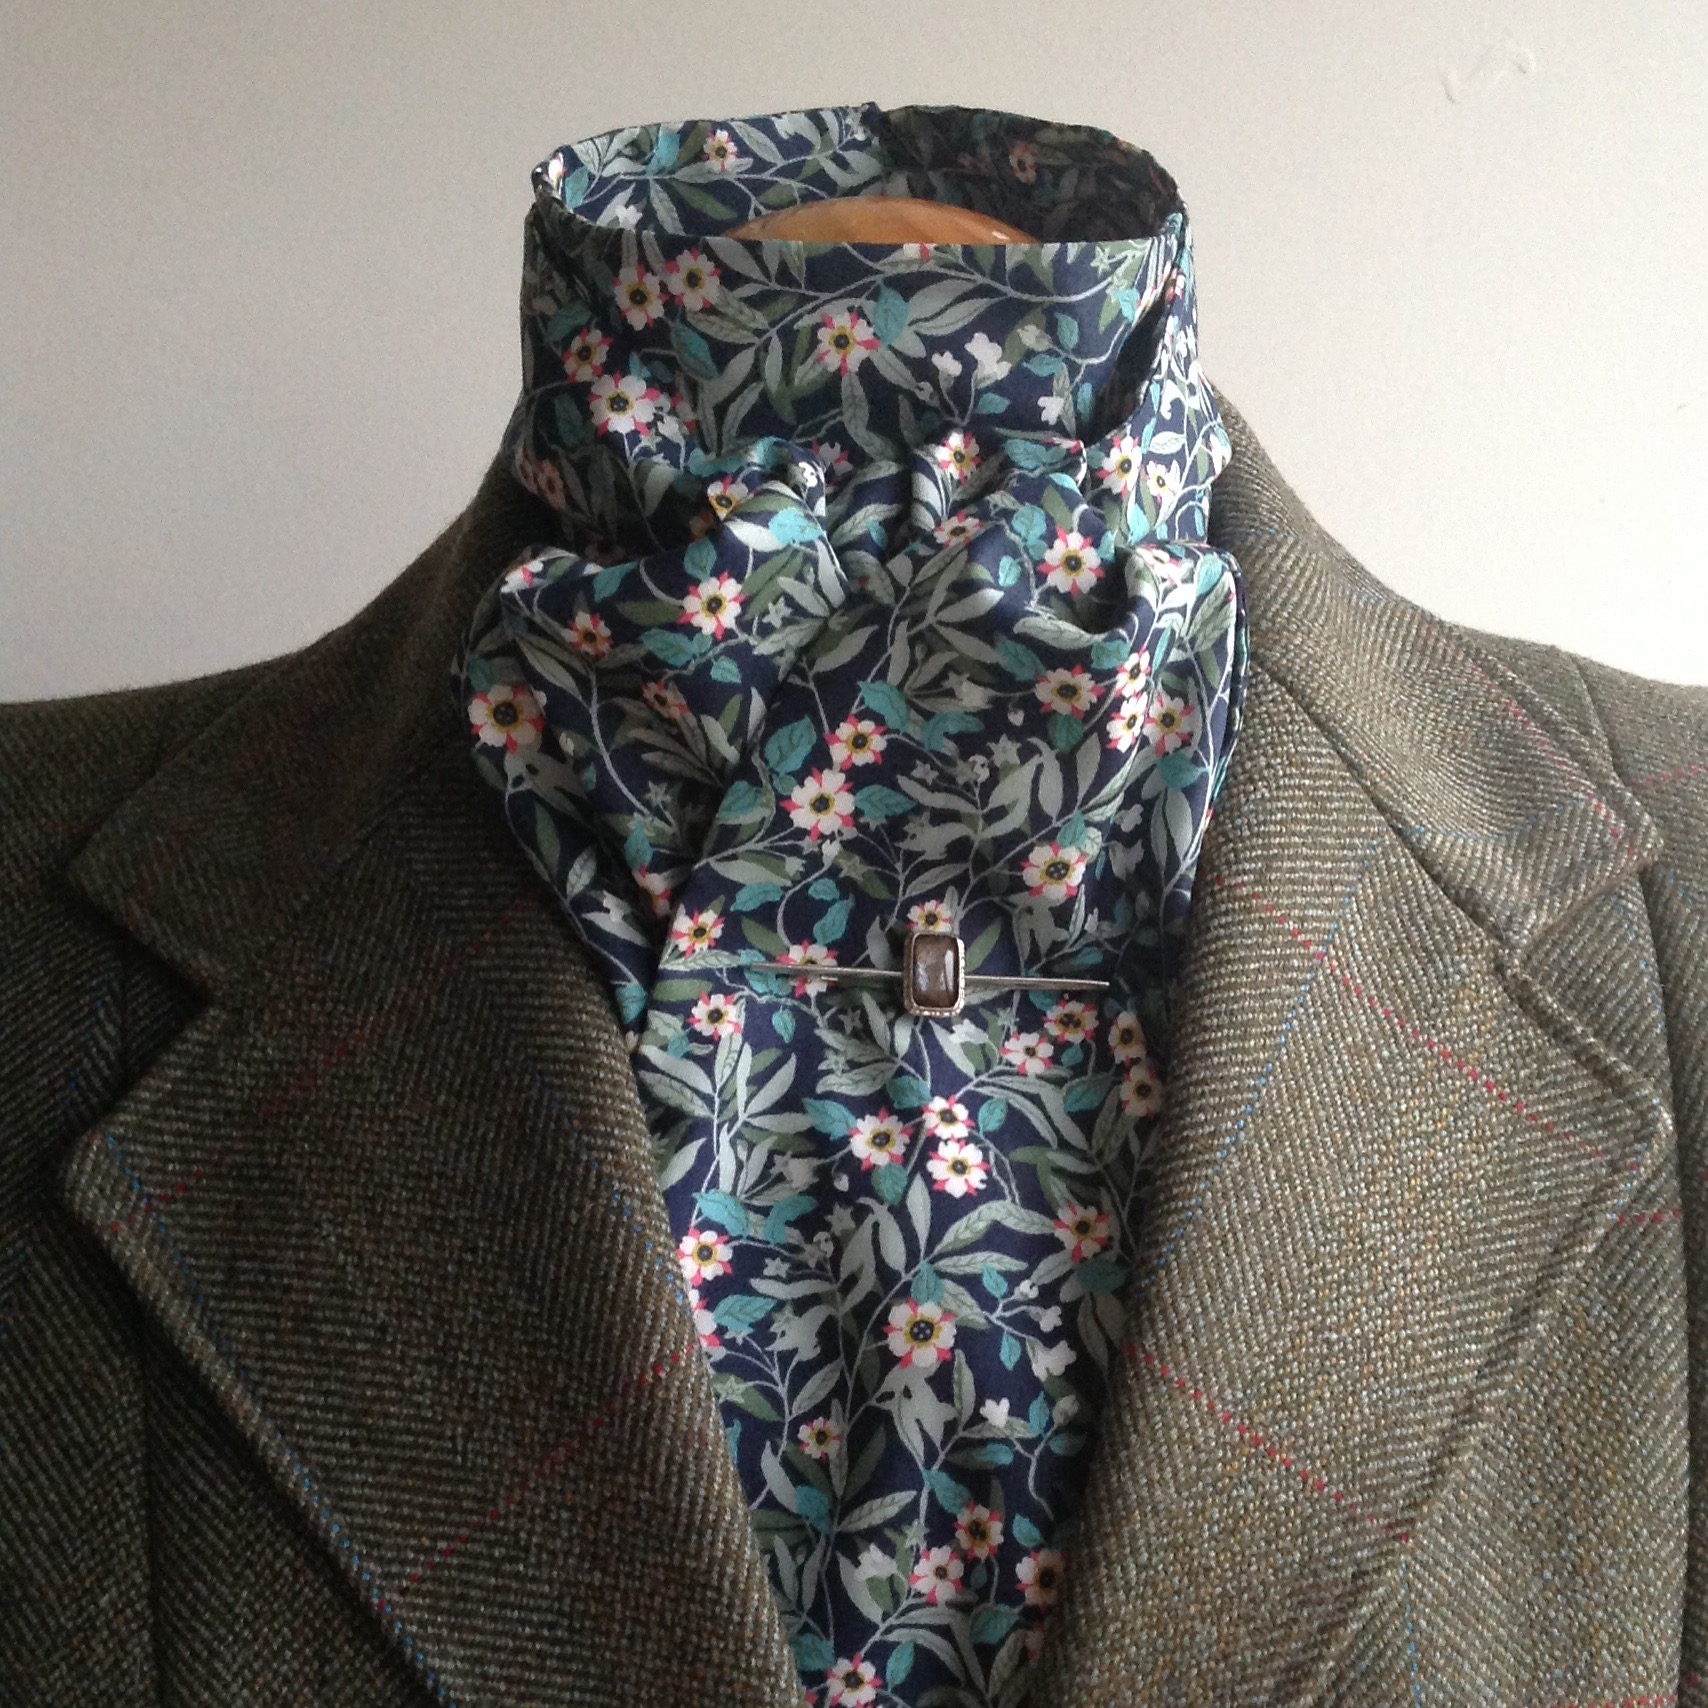 Shaped to tie Liberty tana lawn stock - Brighton Blossom design blue/green colourway